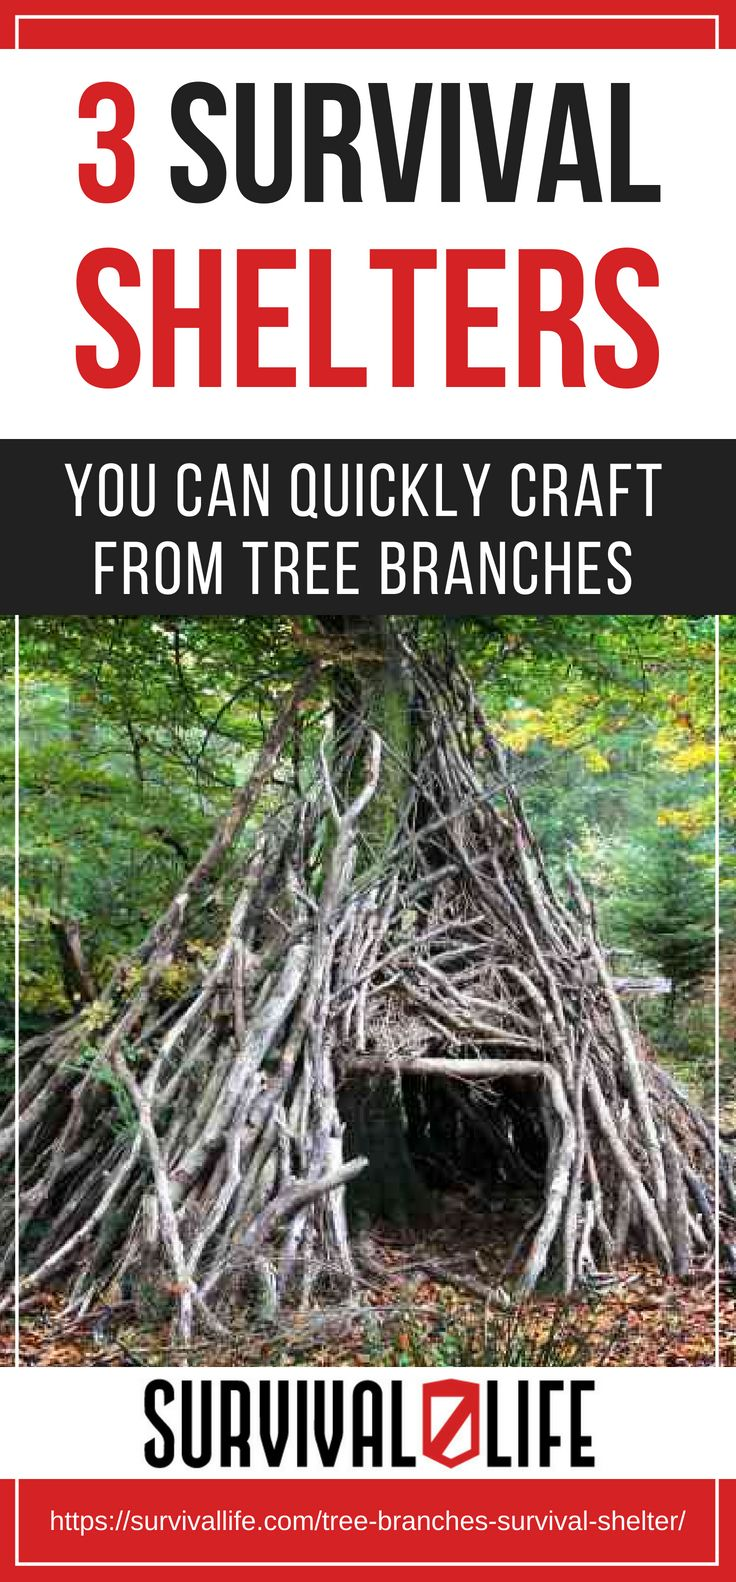 Placard | 3 Survival Shelters You Can Quickly Craft From Tree Branches